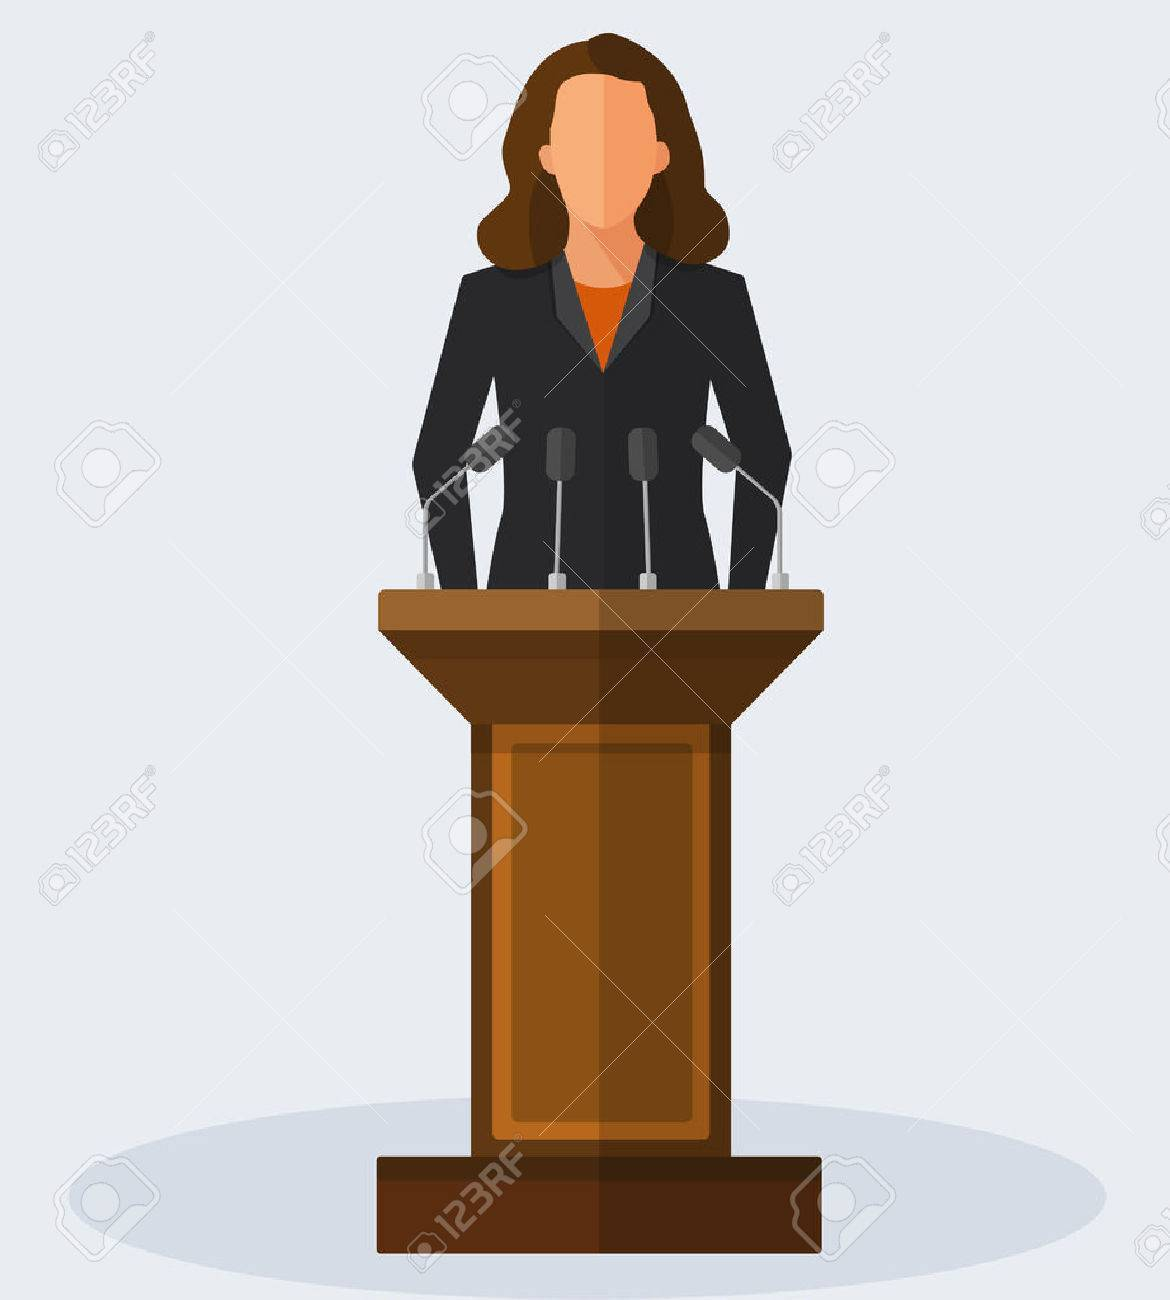 Giving speech clipart clipart library download Giving speech clipart 7 » Clipart Portal clipart library download